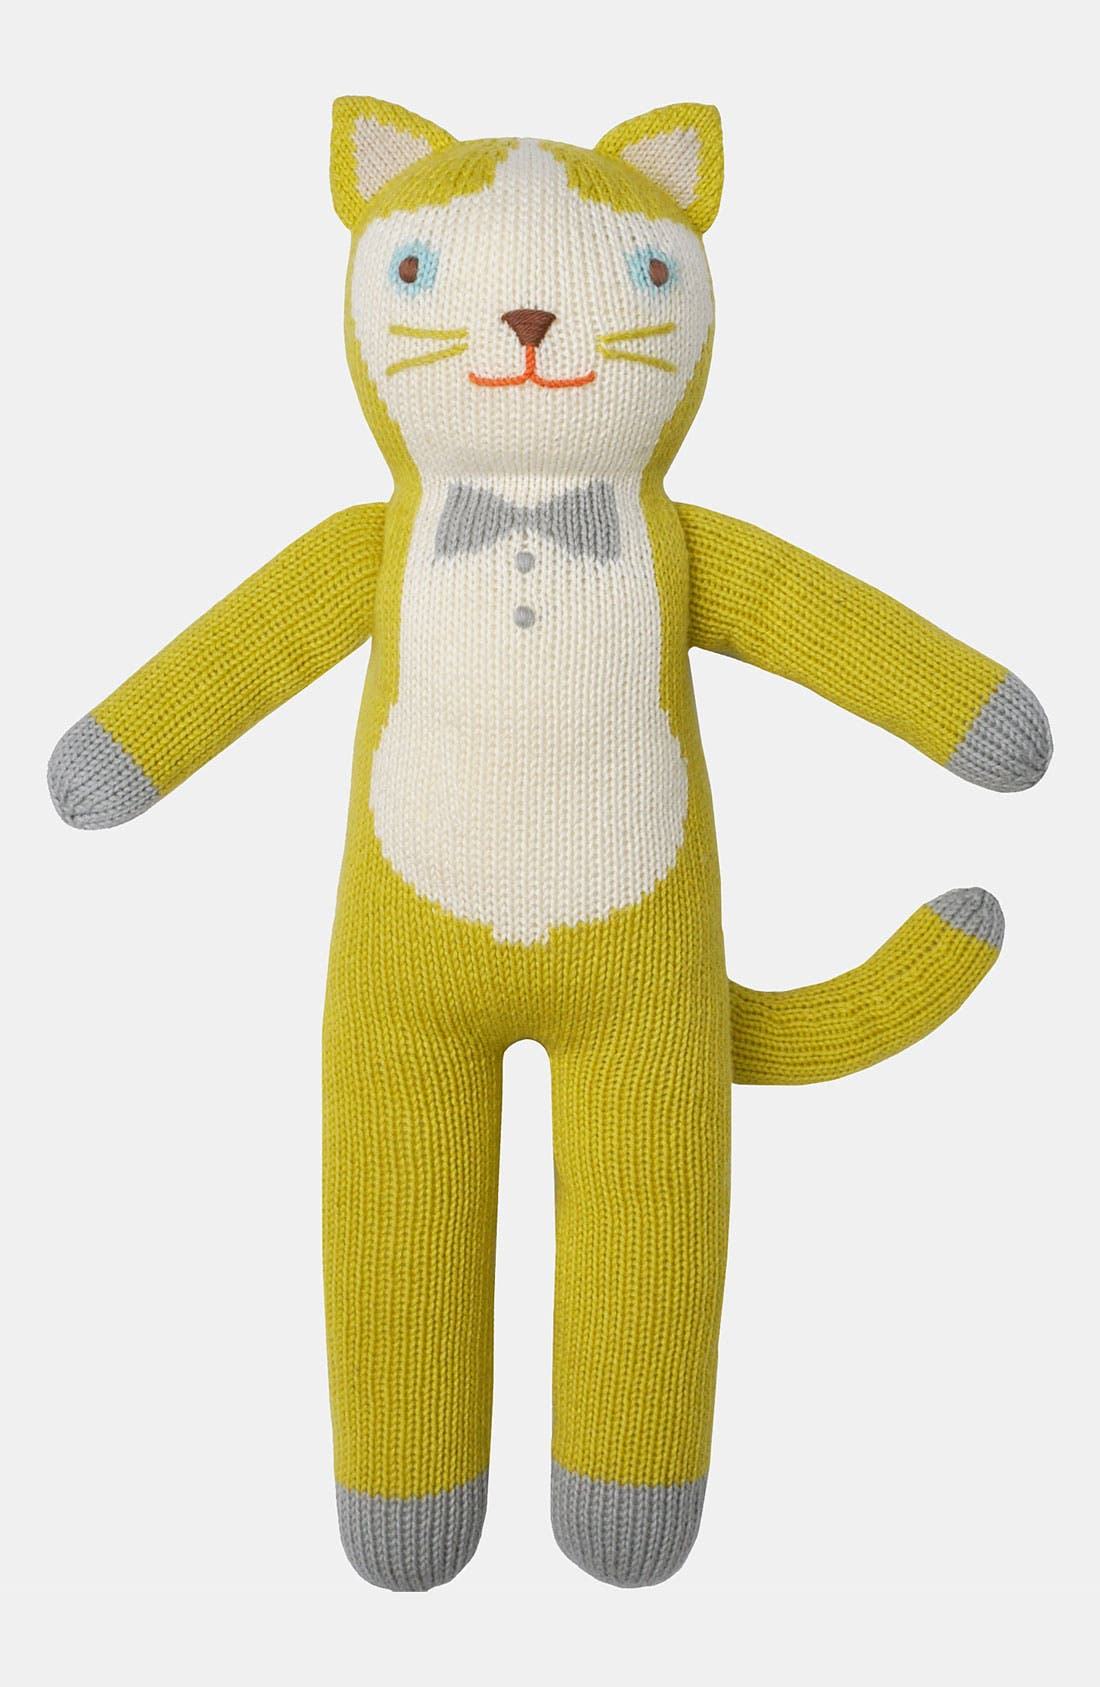 Alternate Image 1 Selected - Blabla 'Theo the Cat' Knit Doll